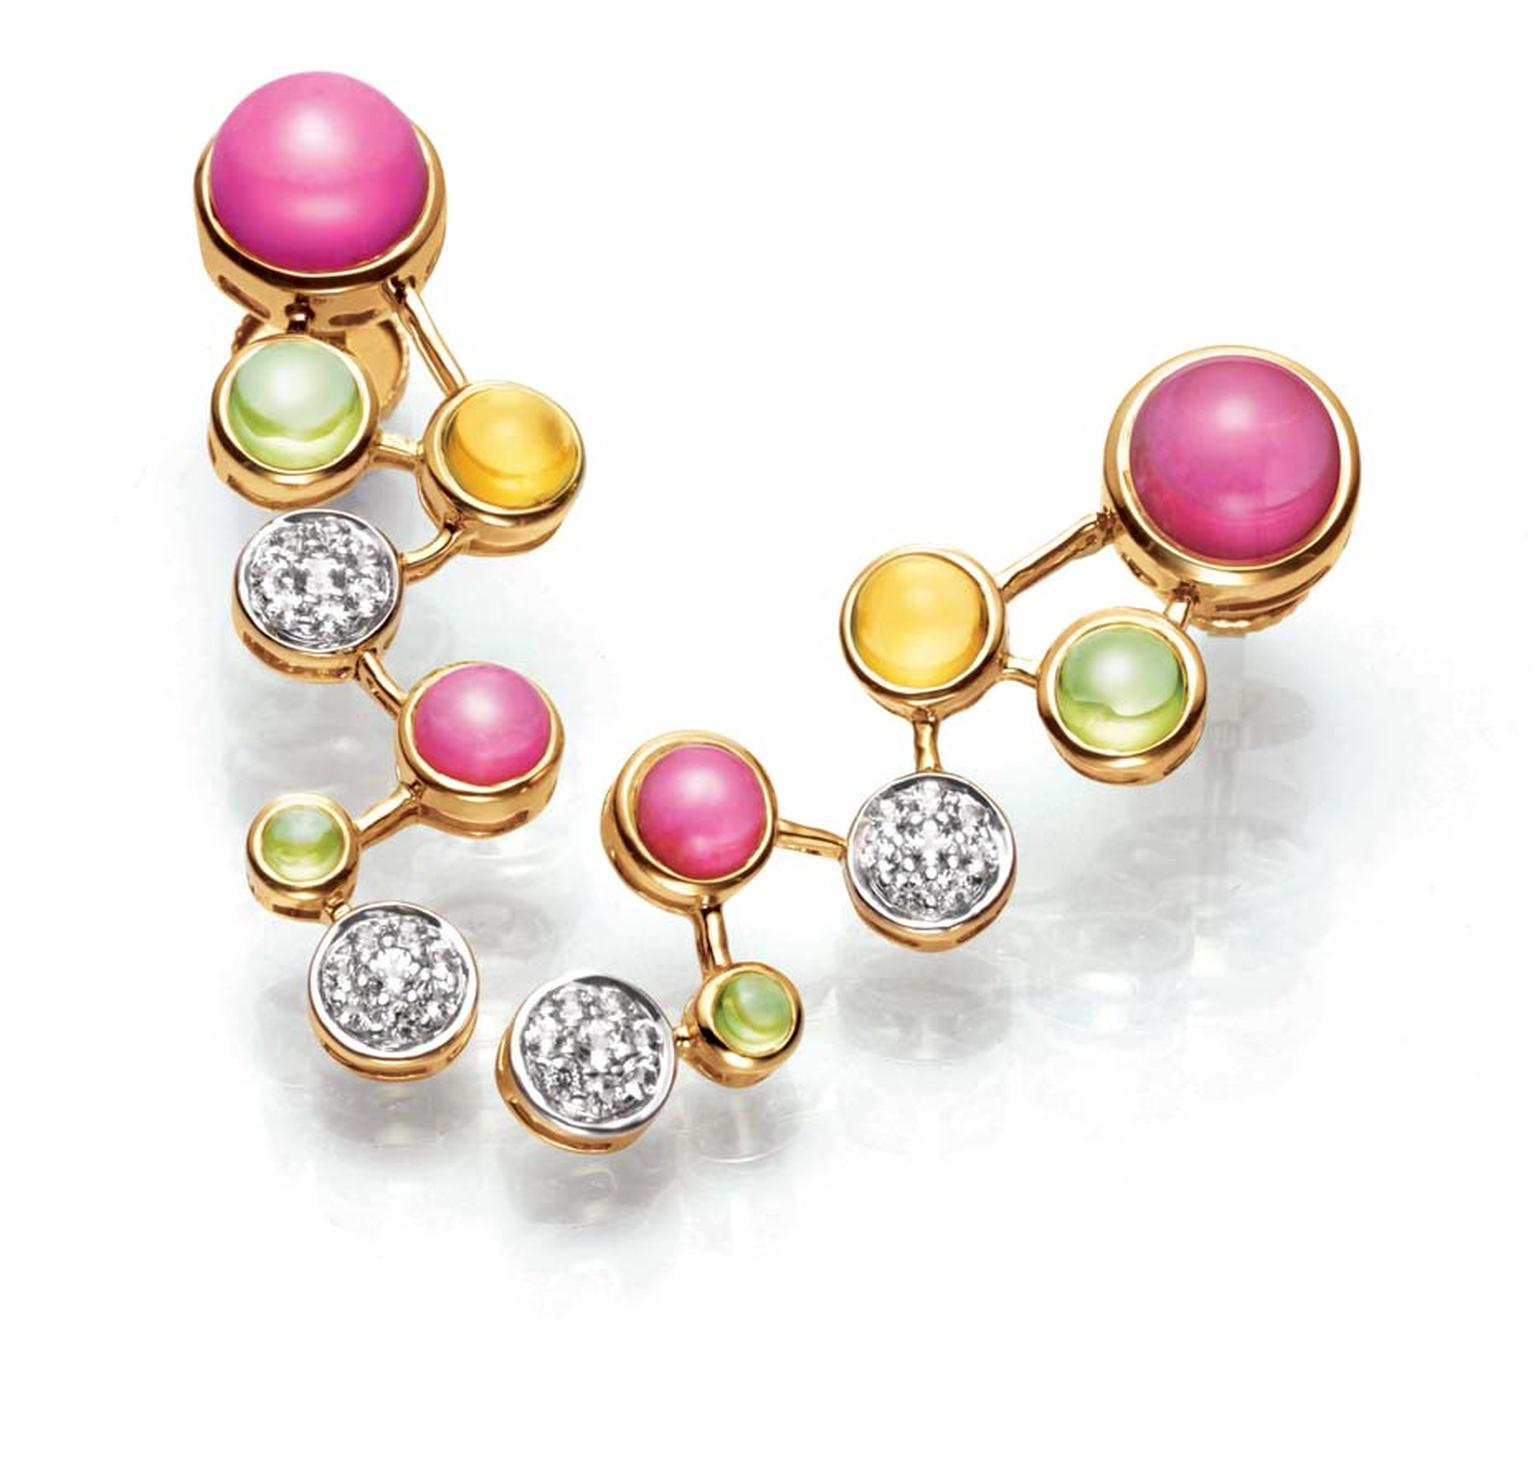 Tanishq IVA 2 collection gold Playful earrings with diamonds and multi-coloured gemstones.